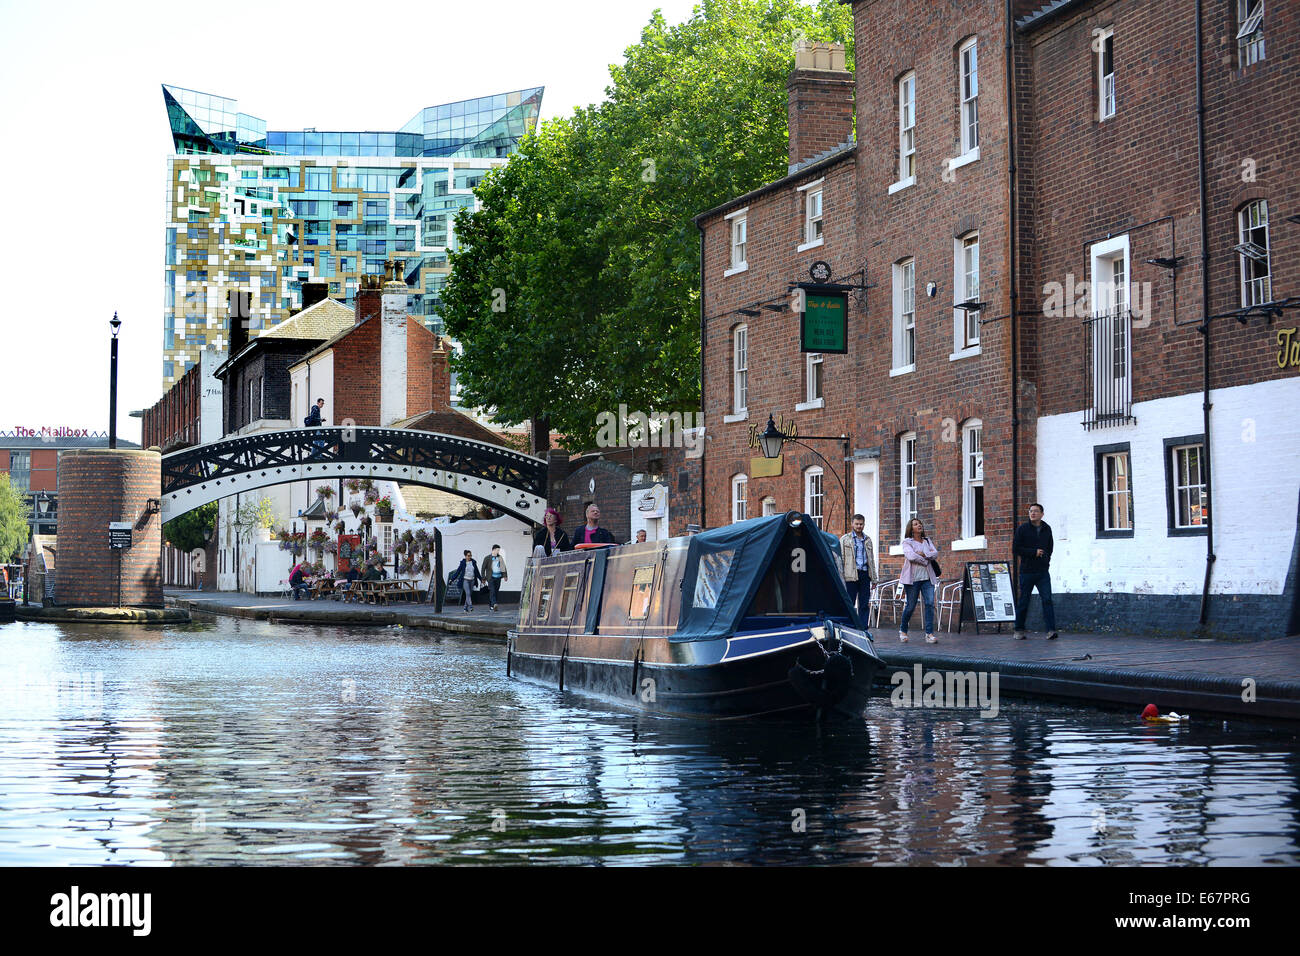 Birmingham canals at Broad Street canal basin in City Centre with old and modern architecture building Uk Stock Photo